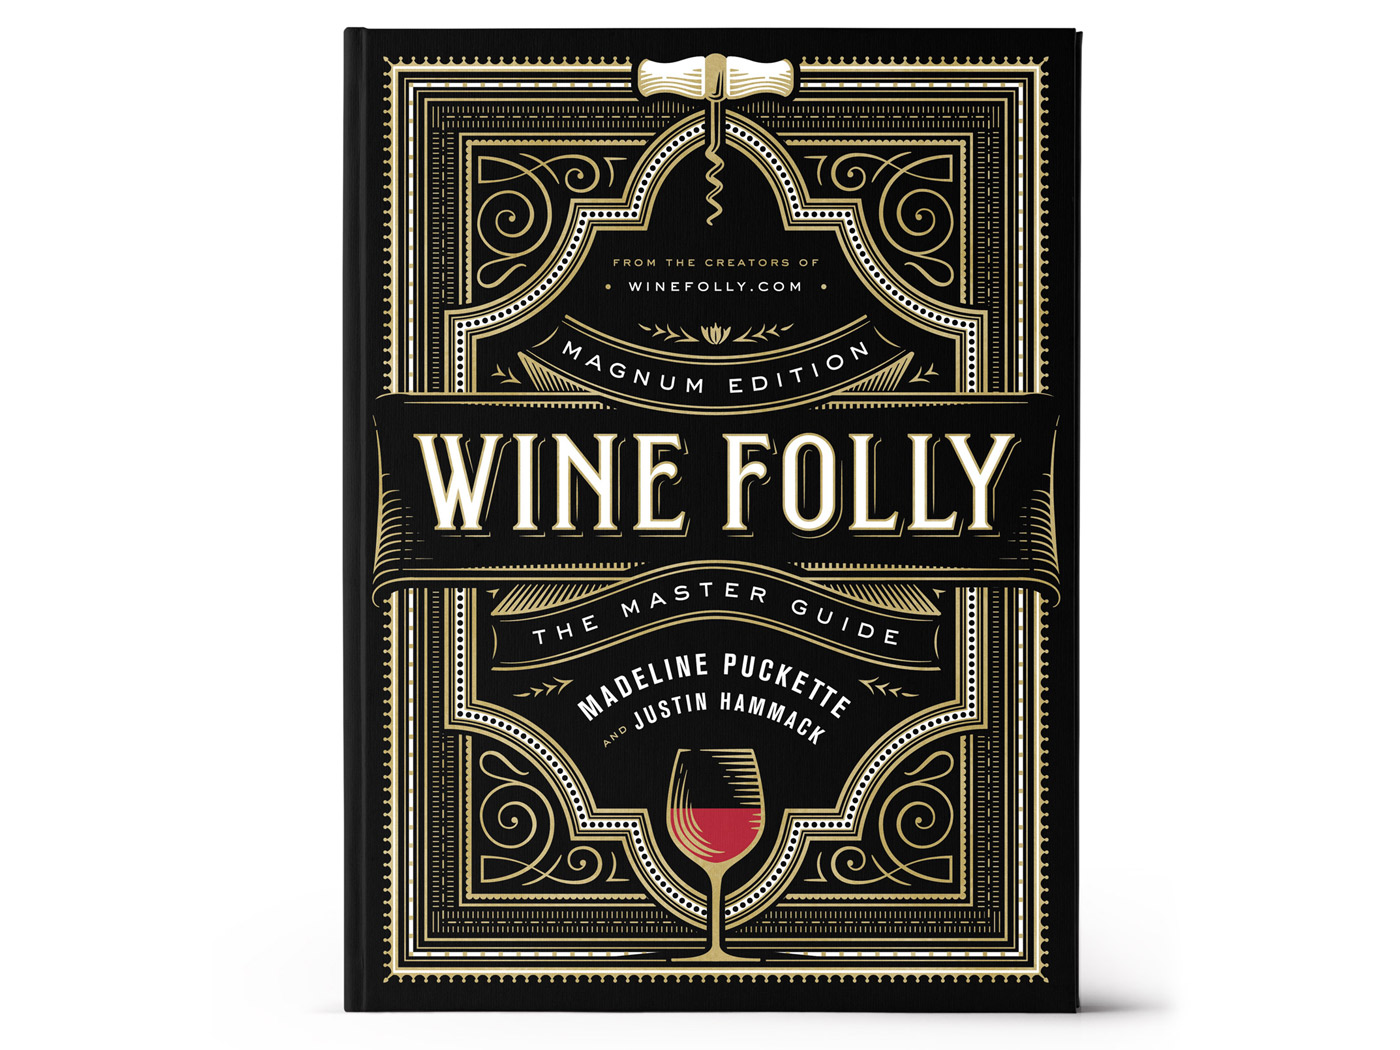 Wine Folly Magnum Edition: The Master Guide Book Hardcover Wide